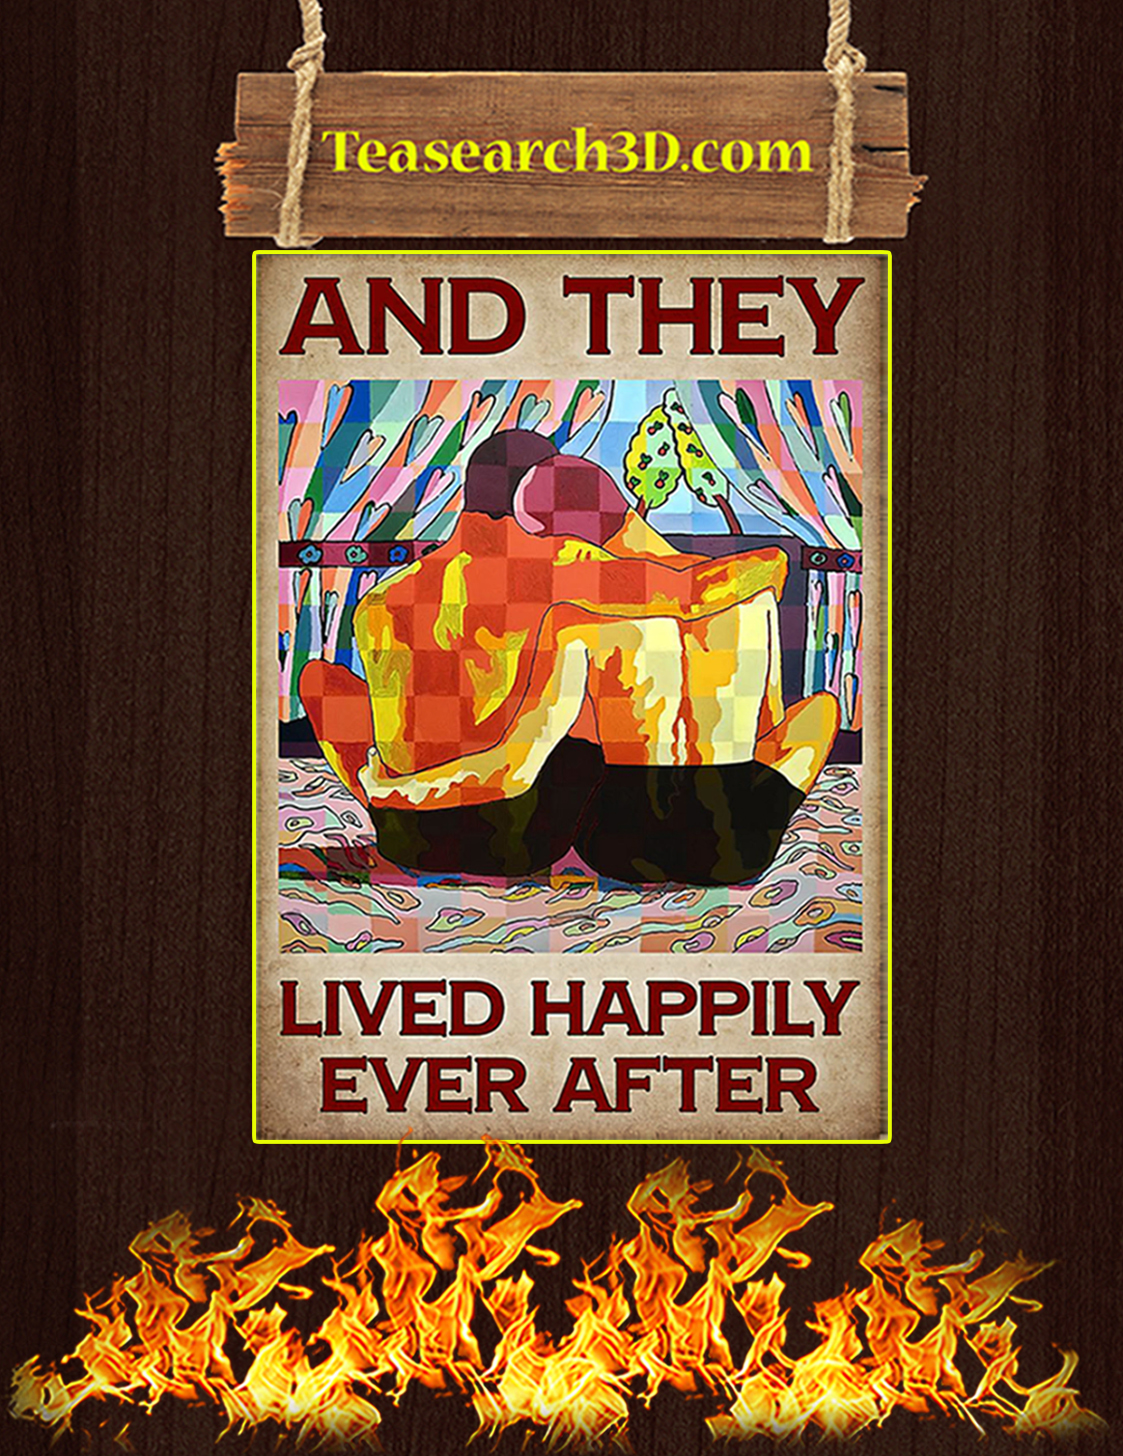 LGBT and they lived happily ever after poster A3